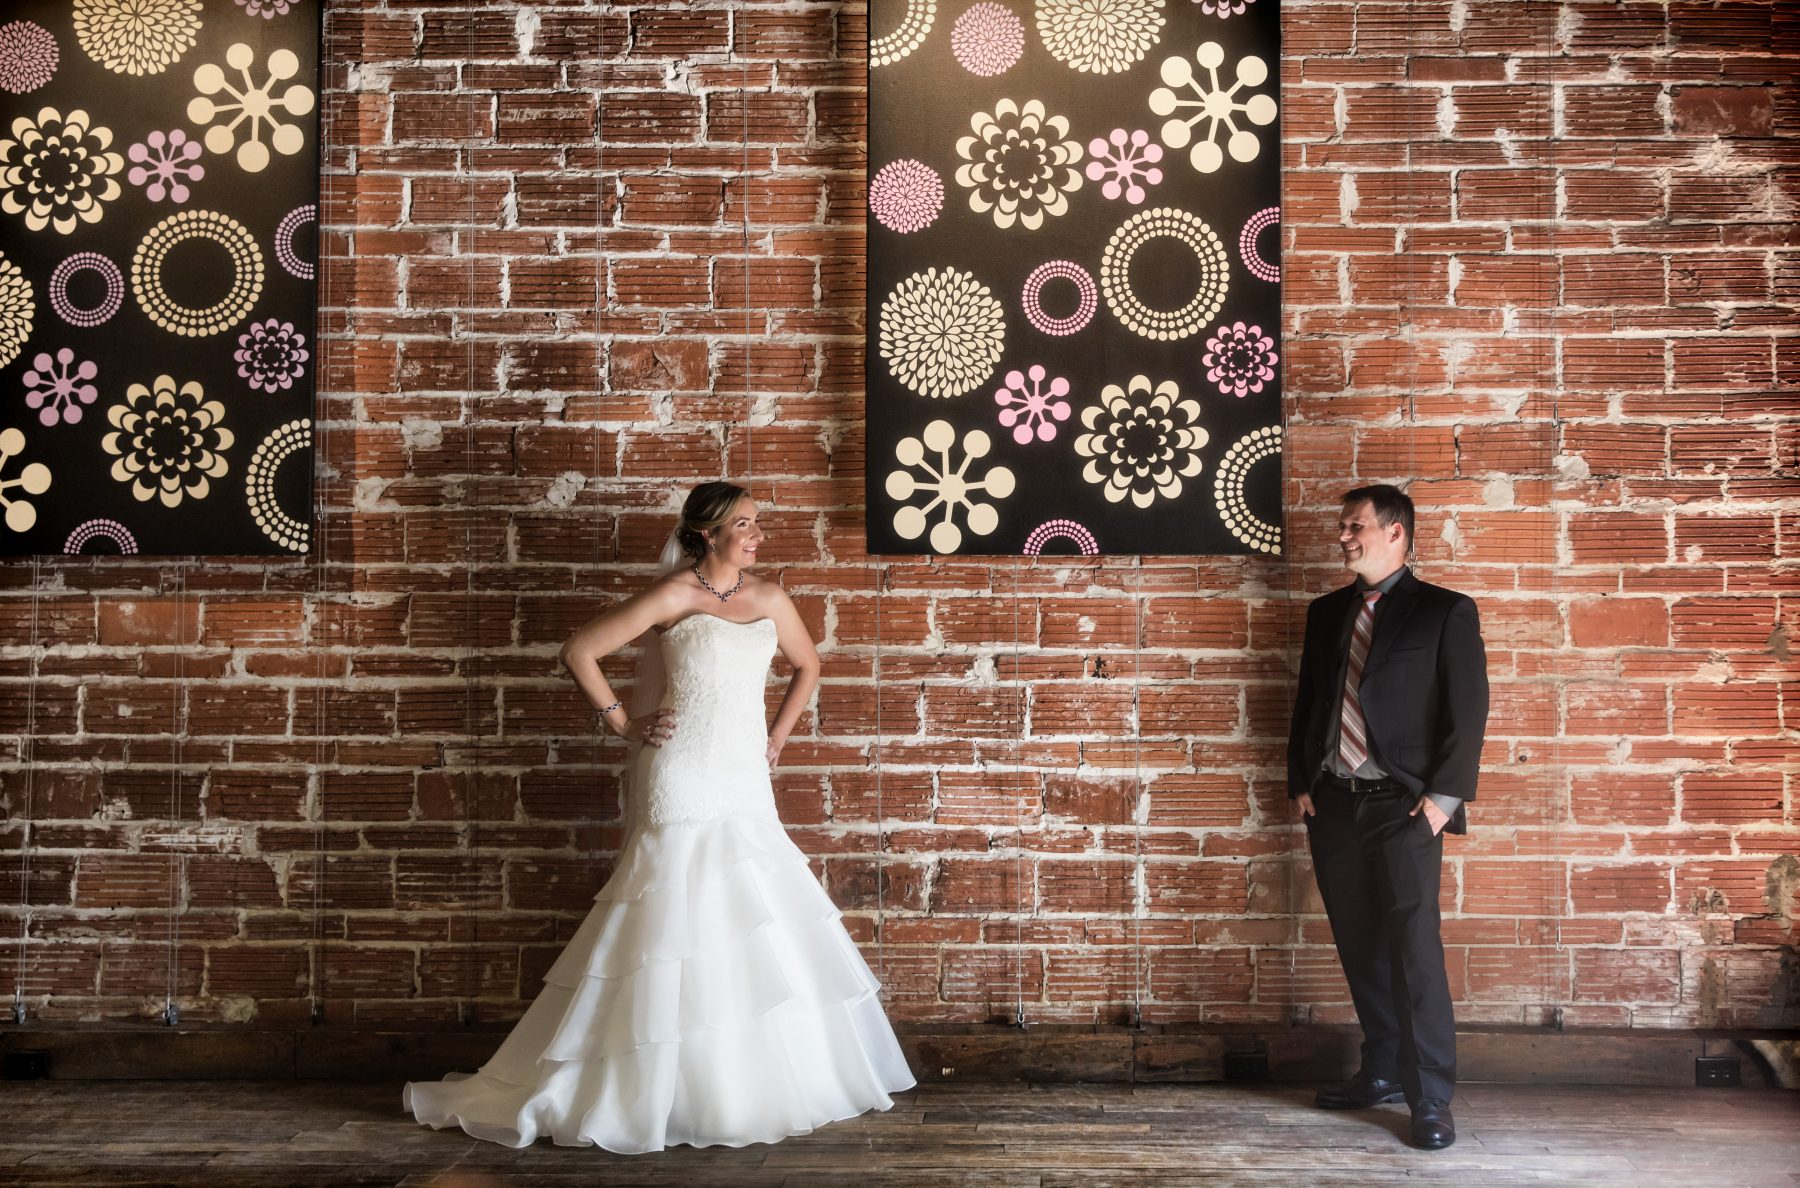 Vintage Inspired Florida Bride and Groom against Exposed Red Brick Wall | Downtown St. Pete Unique Wedding Venue NOVA 535